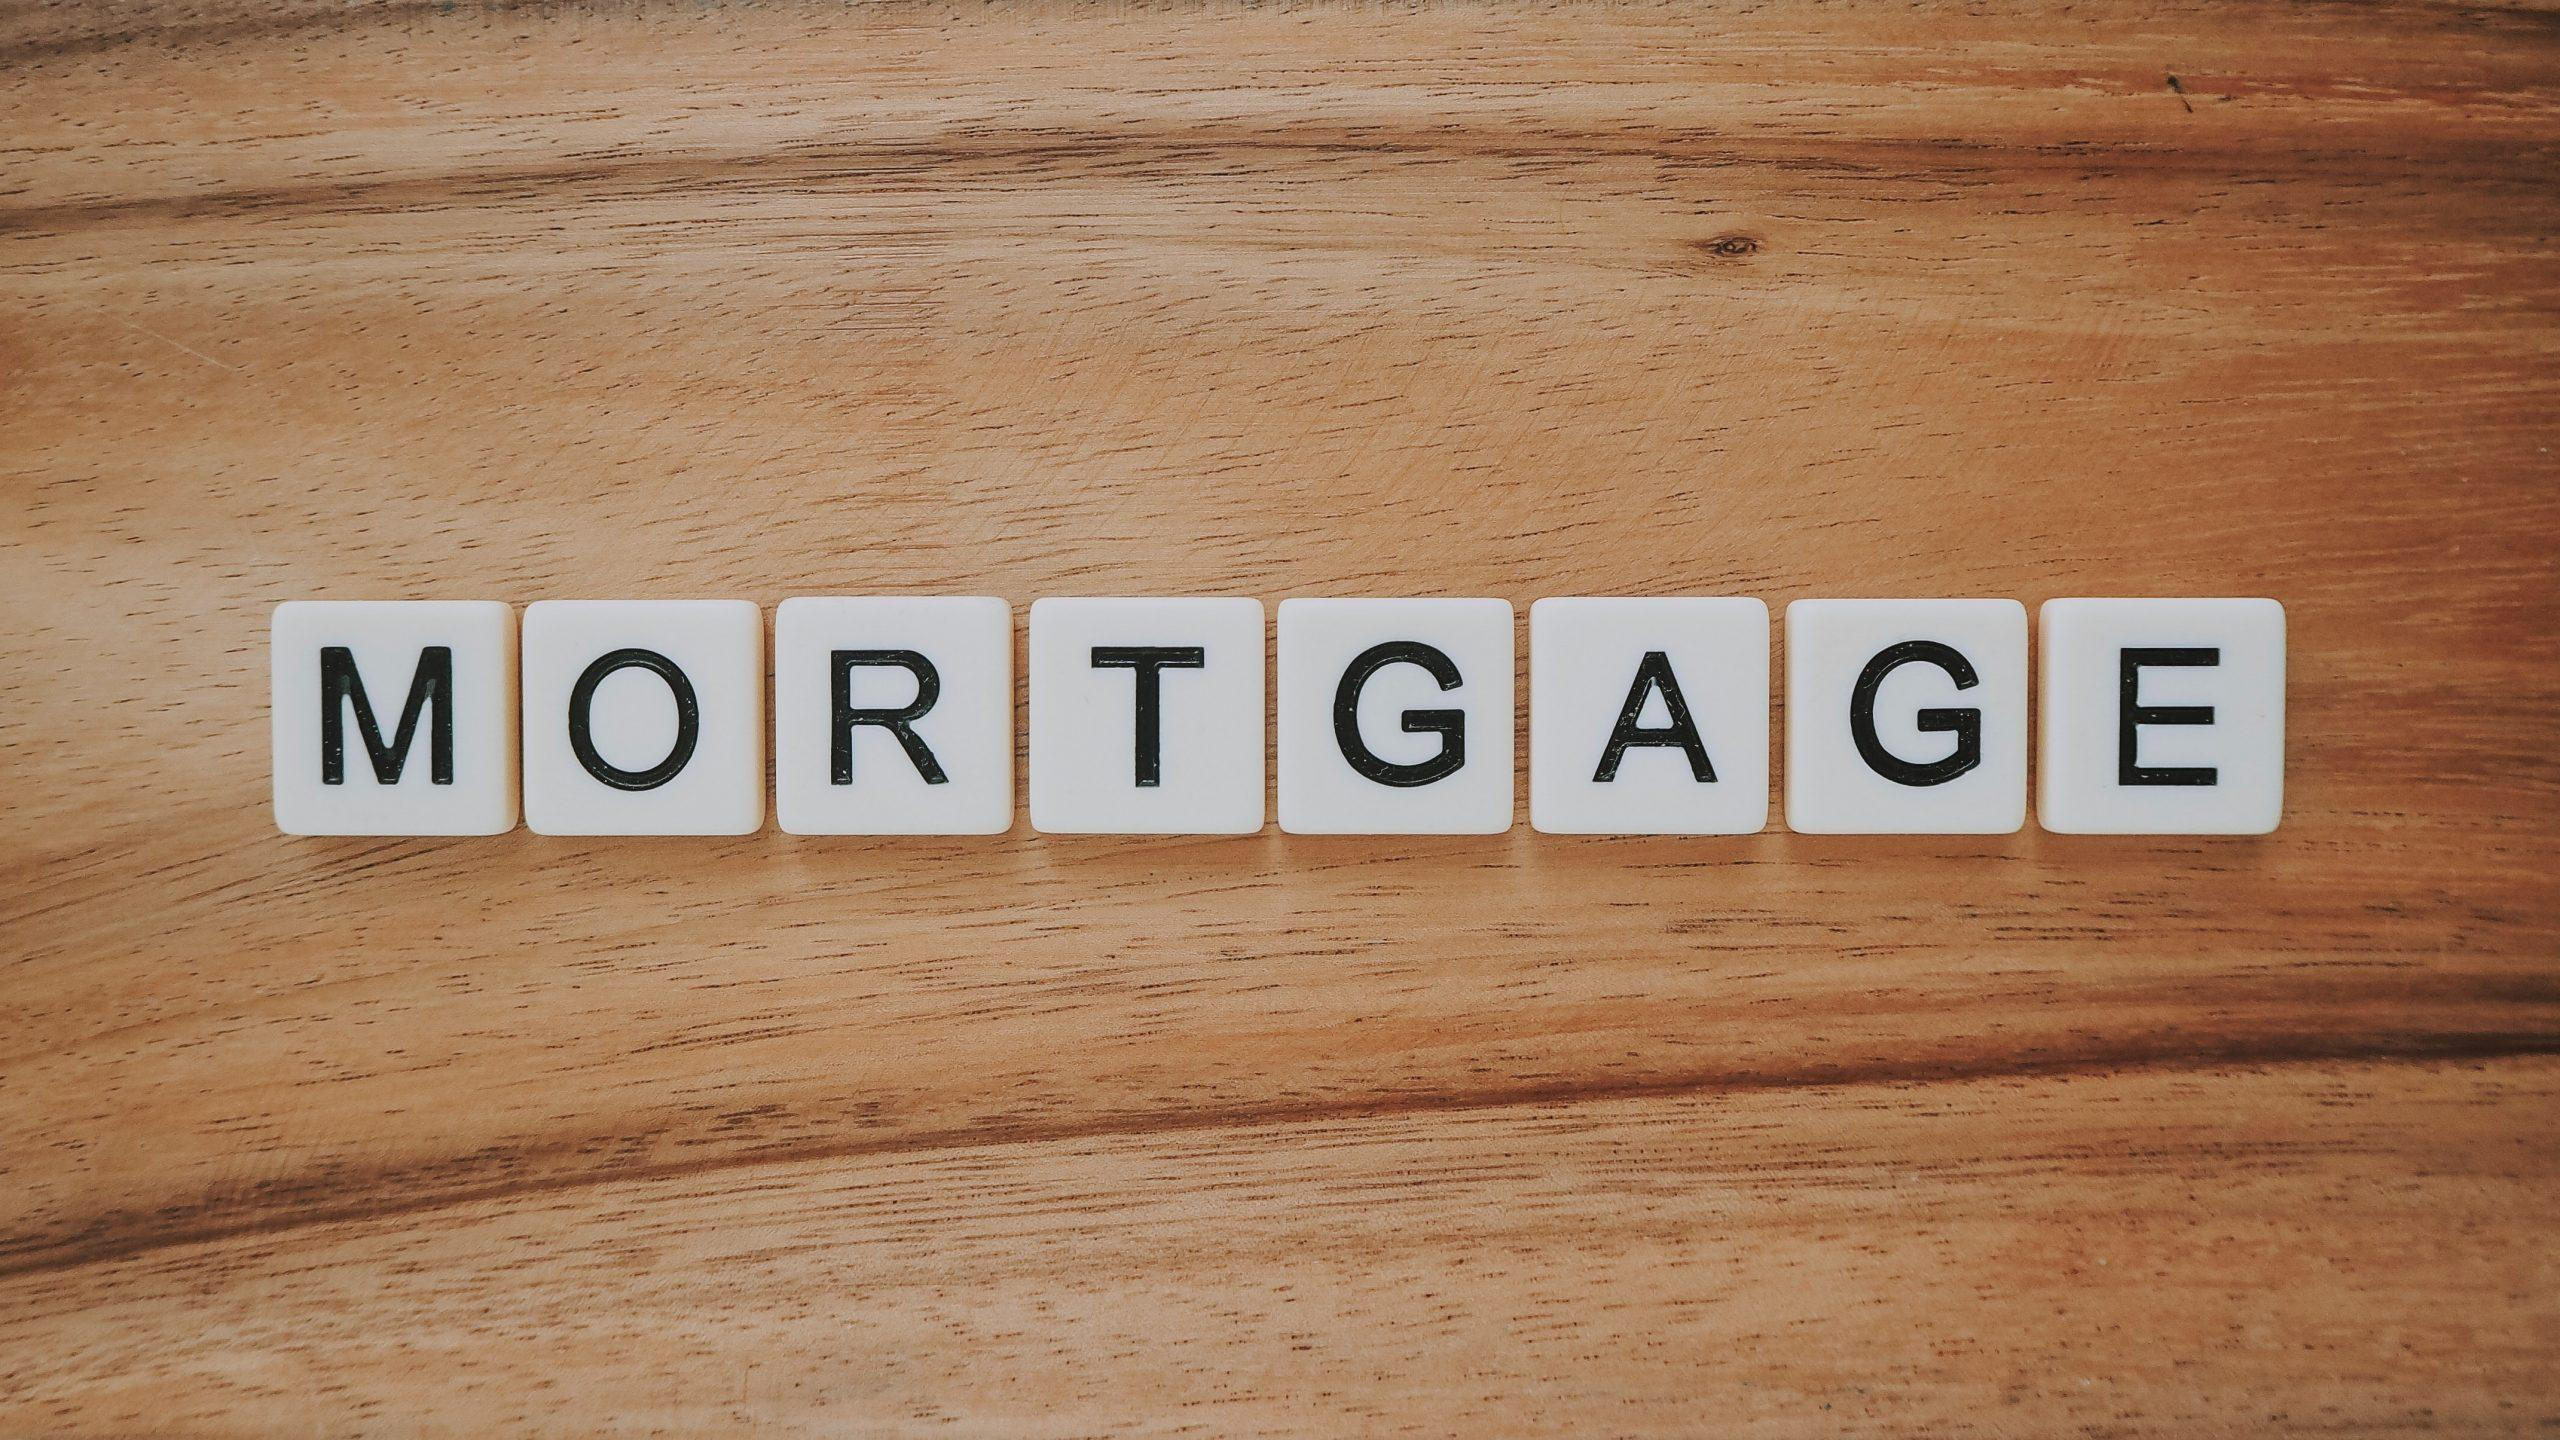 The word mortgage spelt out in scrabble tile letters on a wooden background